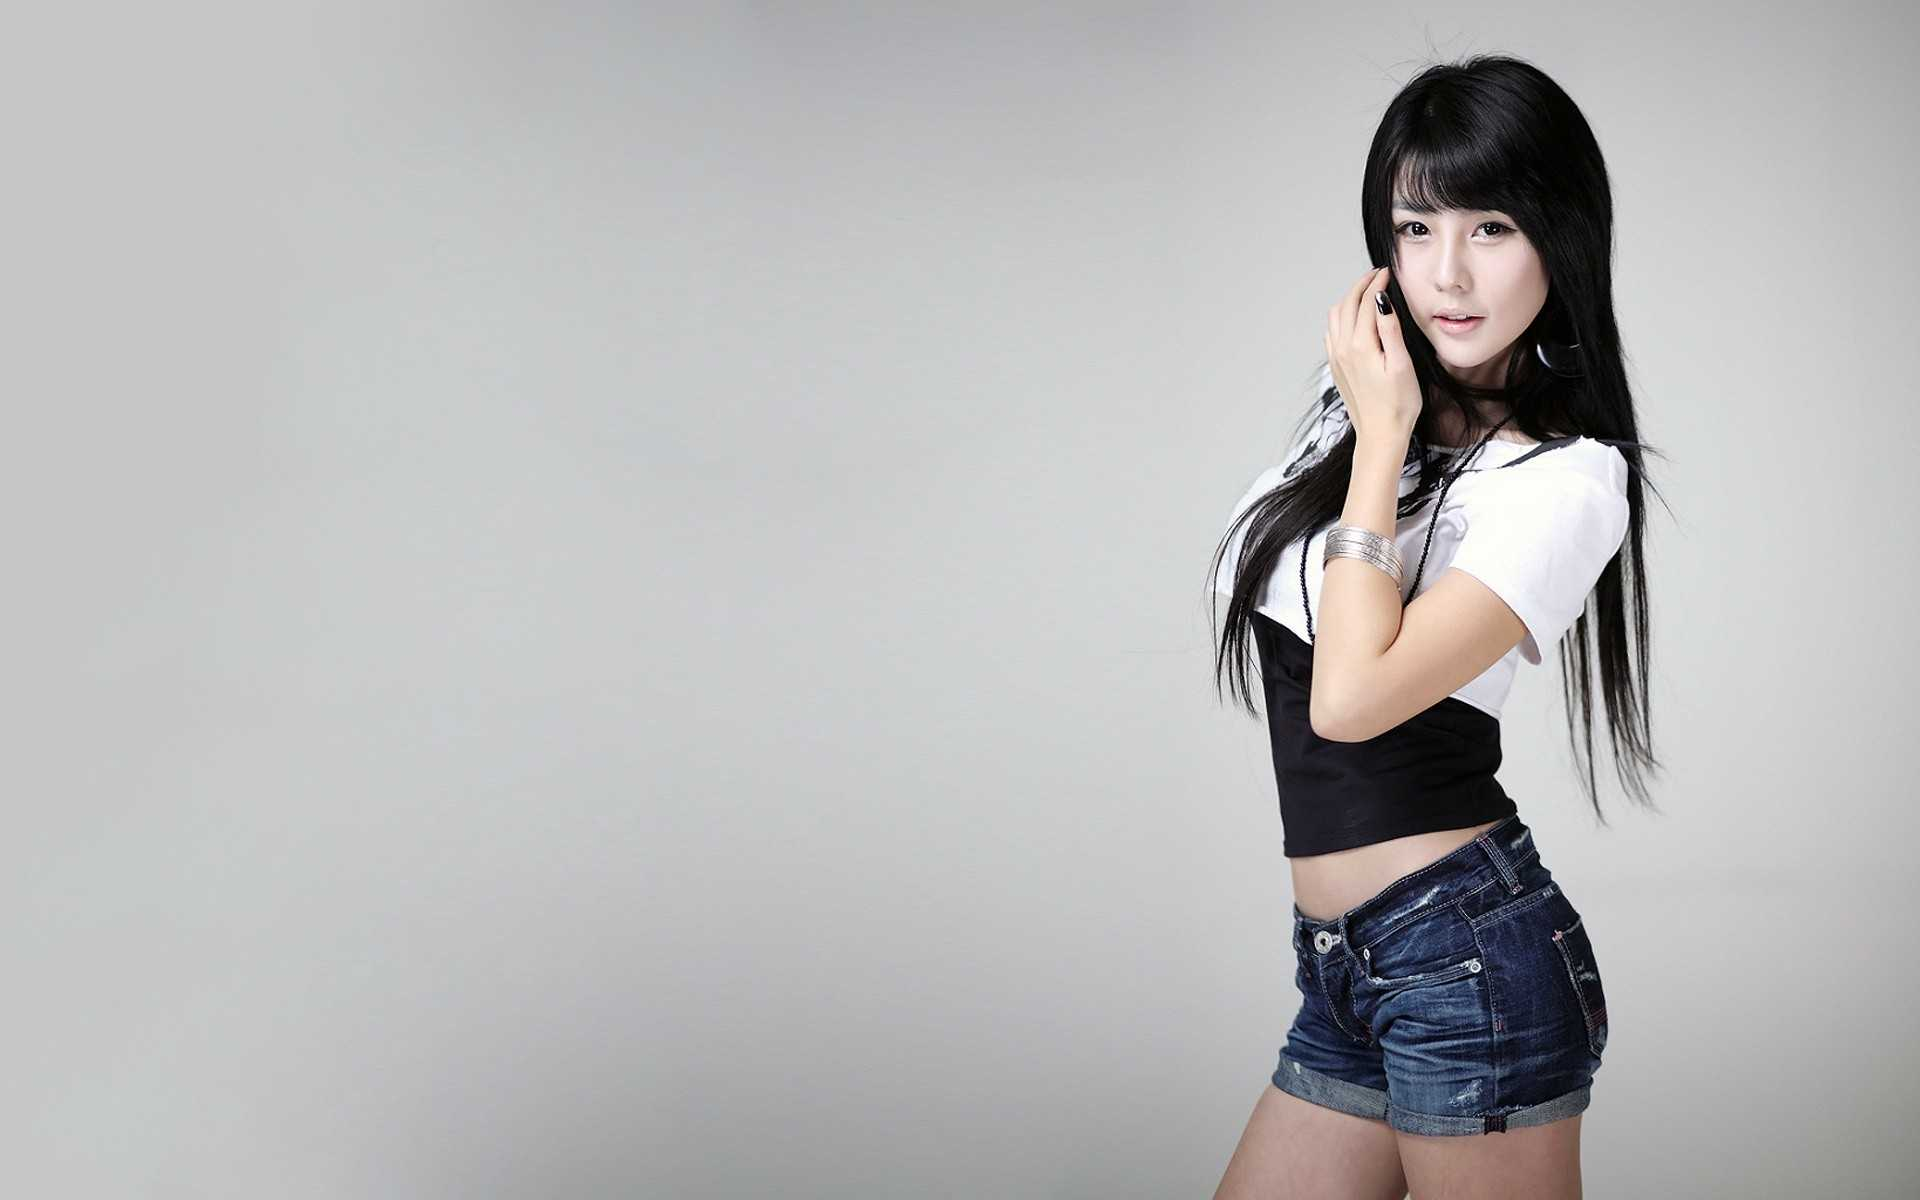 Lee Ji Woo Backgrounds, Compatible - PC, Mobile, Gadgets| 1920x1200 px